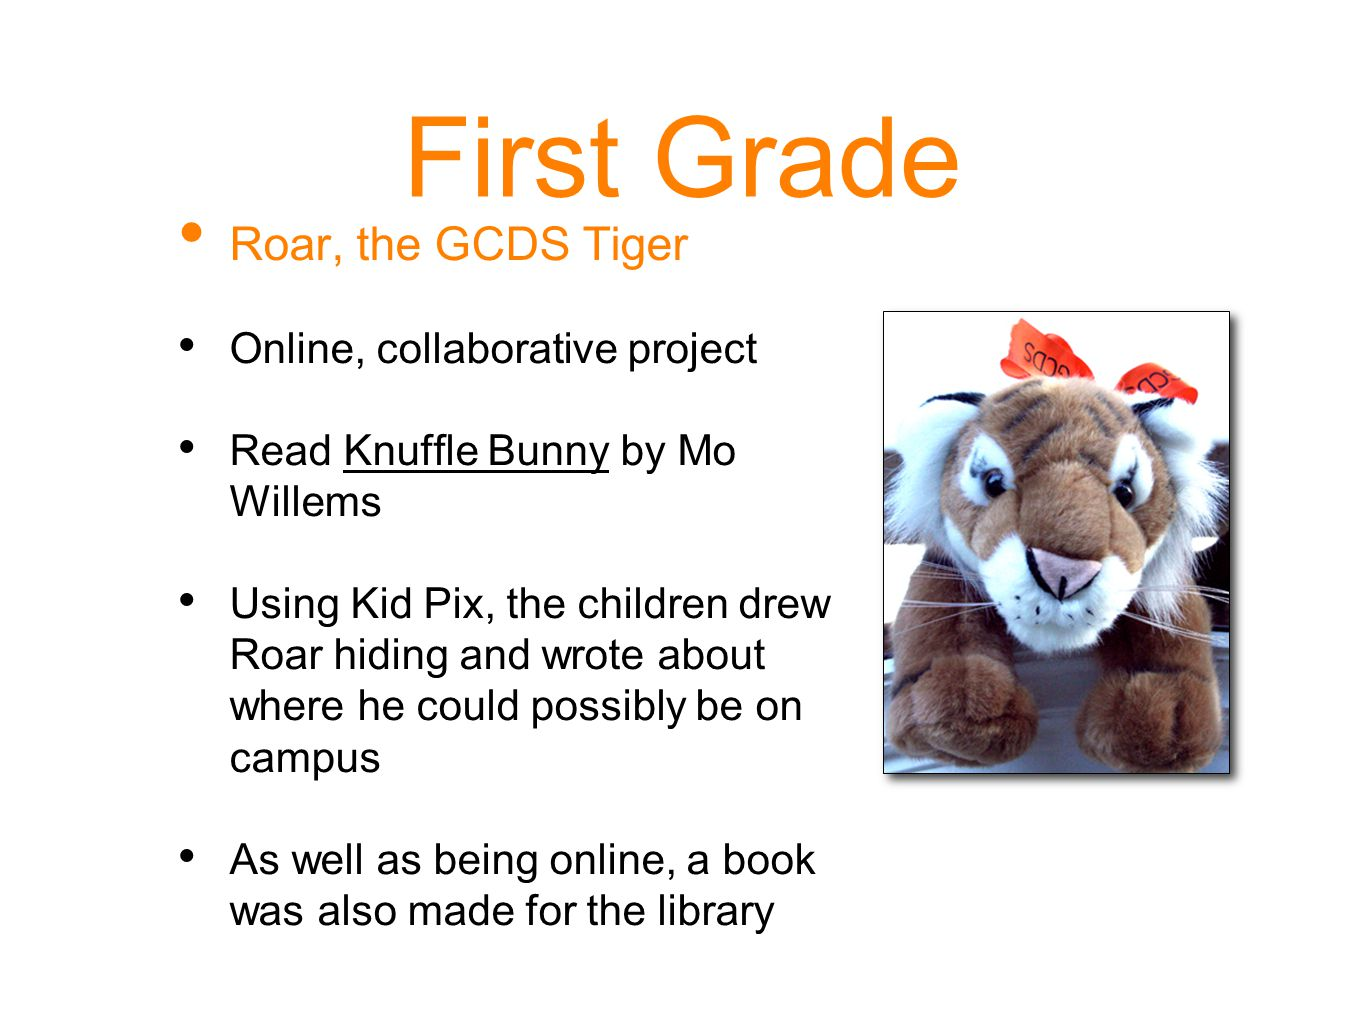 First Grade Roar, the GCDS Tiger Online, collaborative project